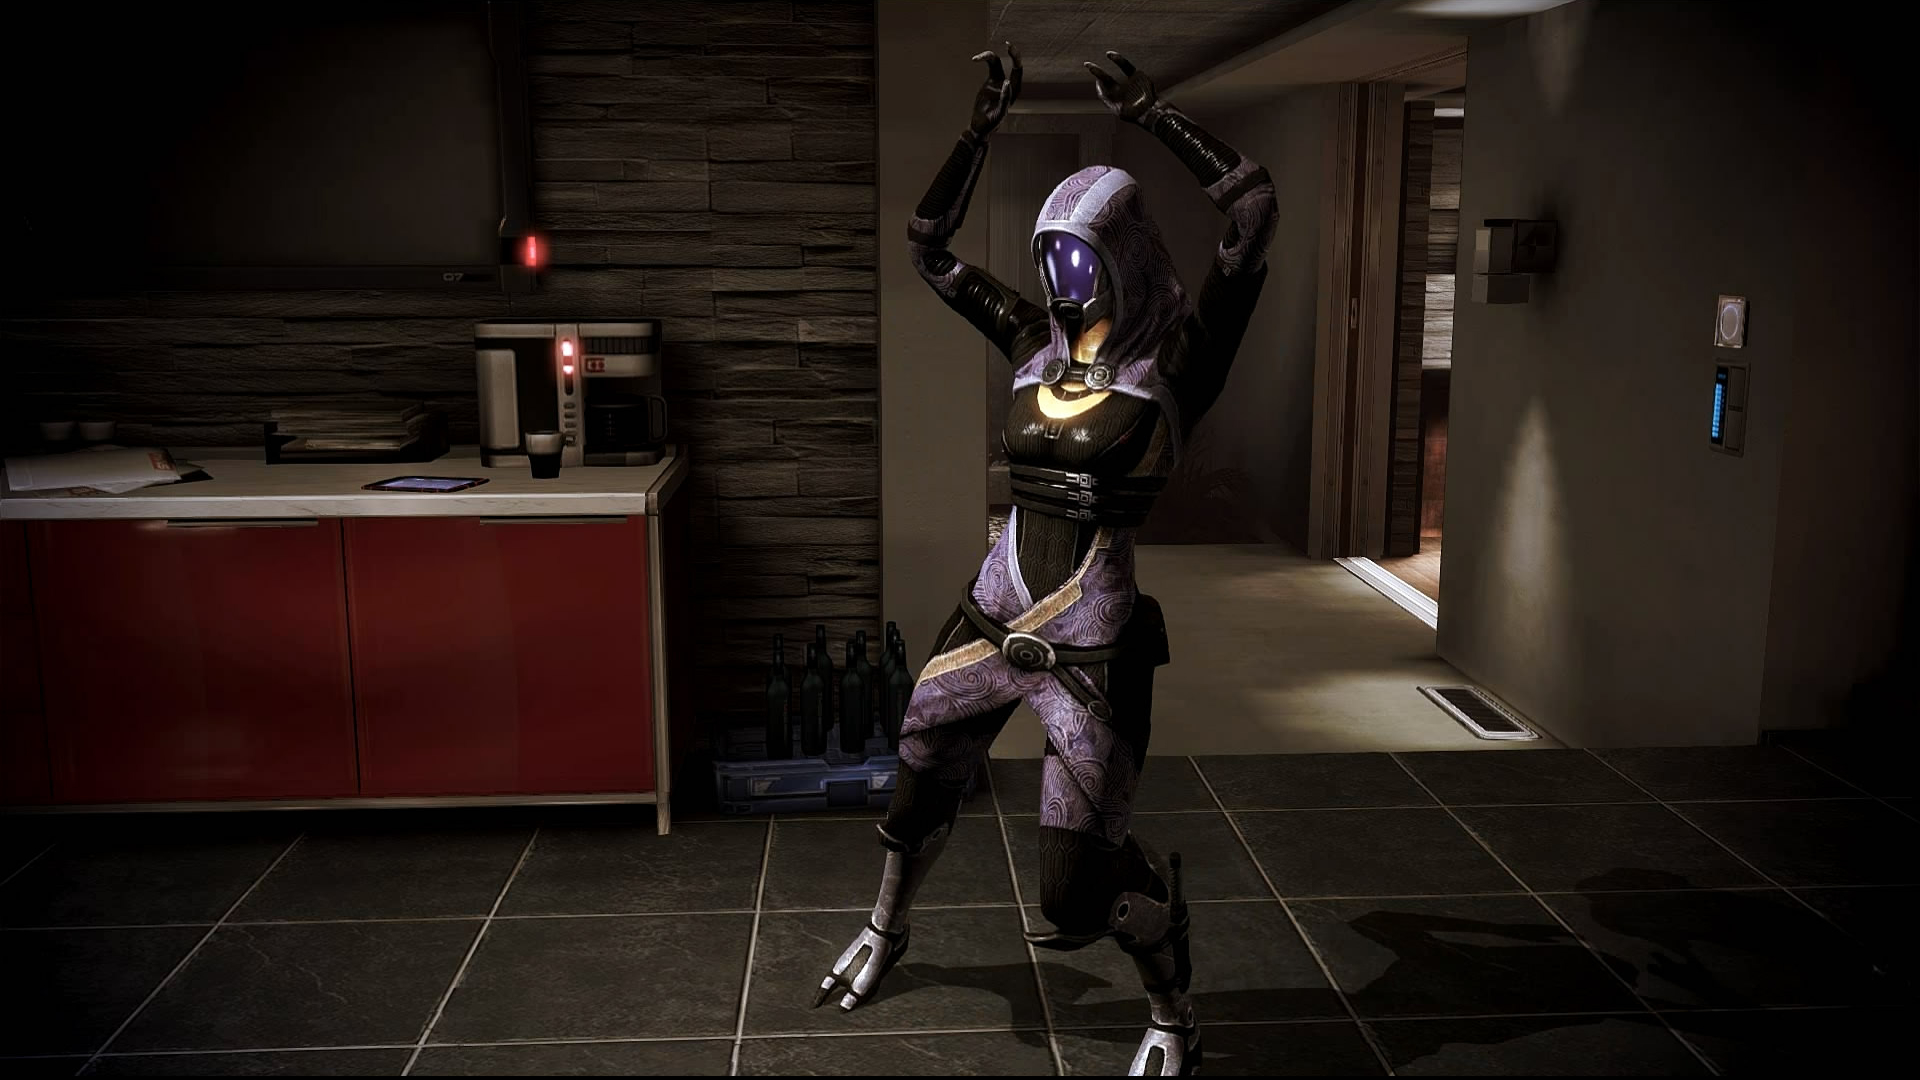 Mass Effect 3 Tali Dancing Dreamscene by droot1986